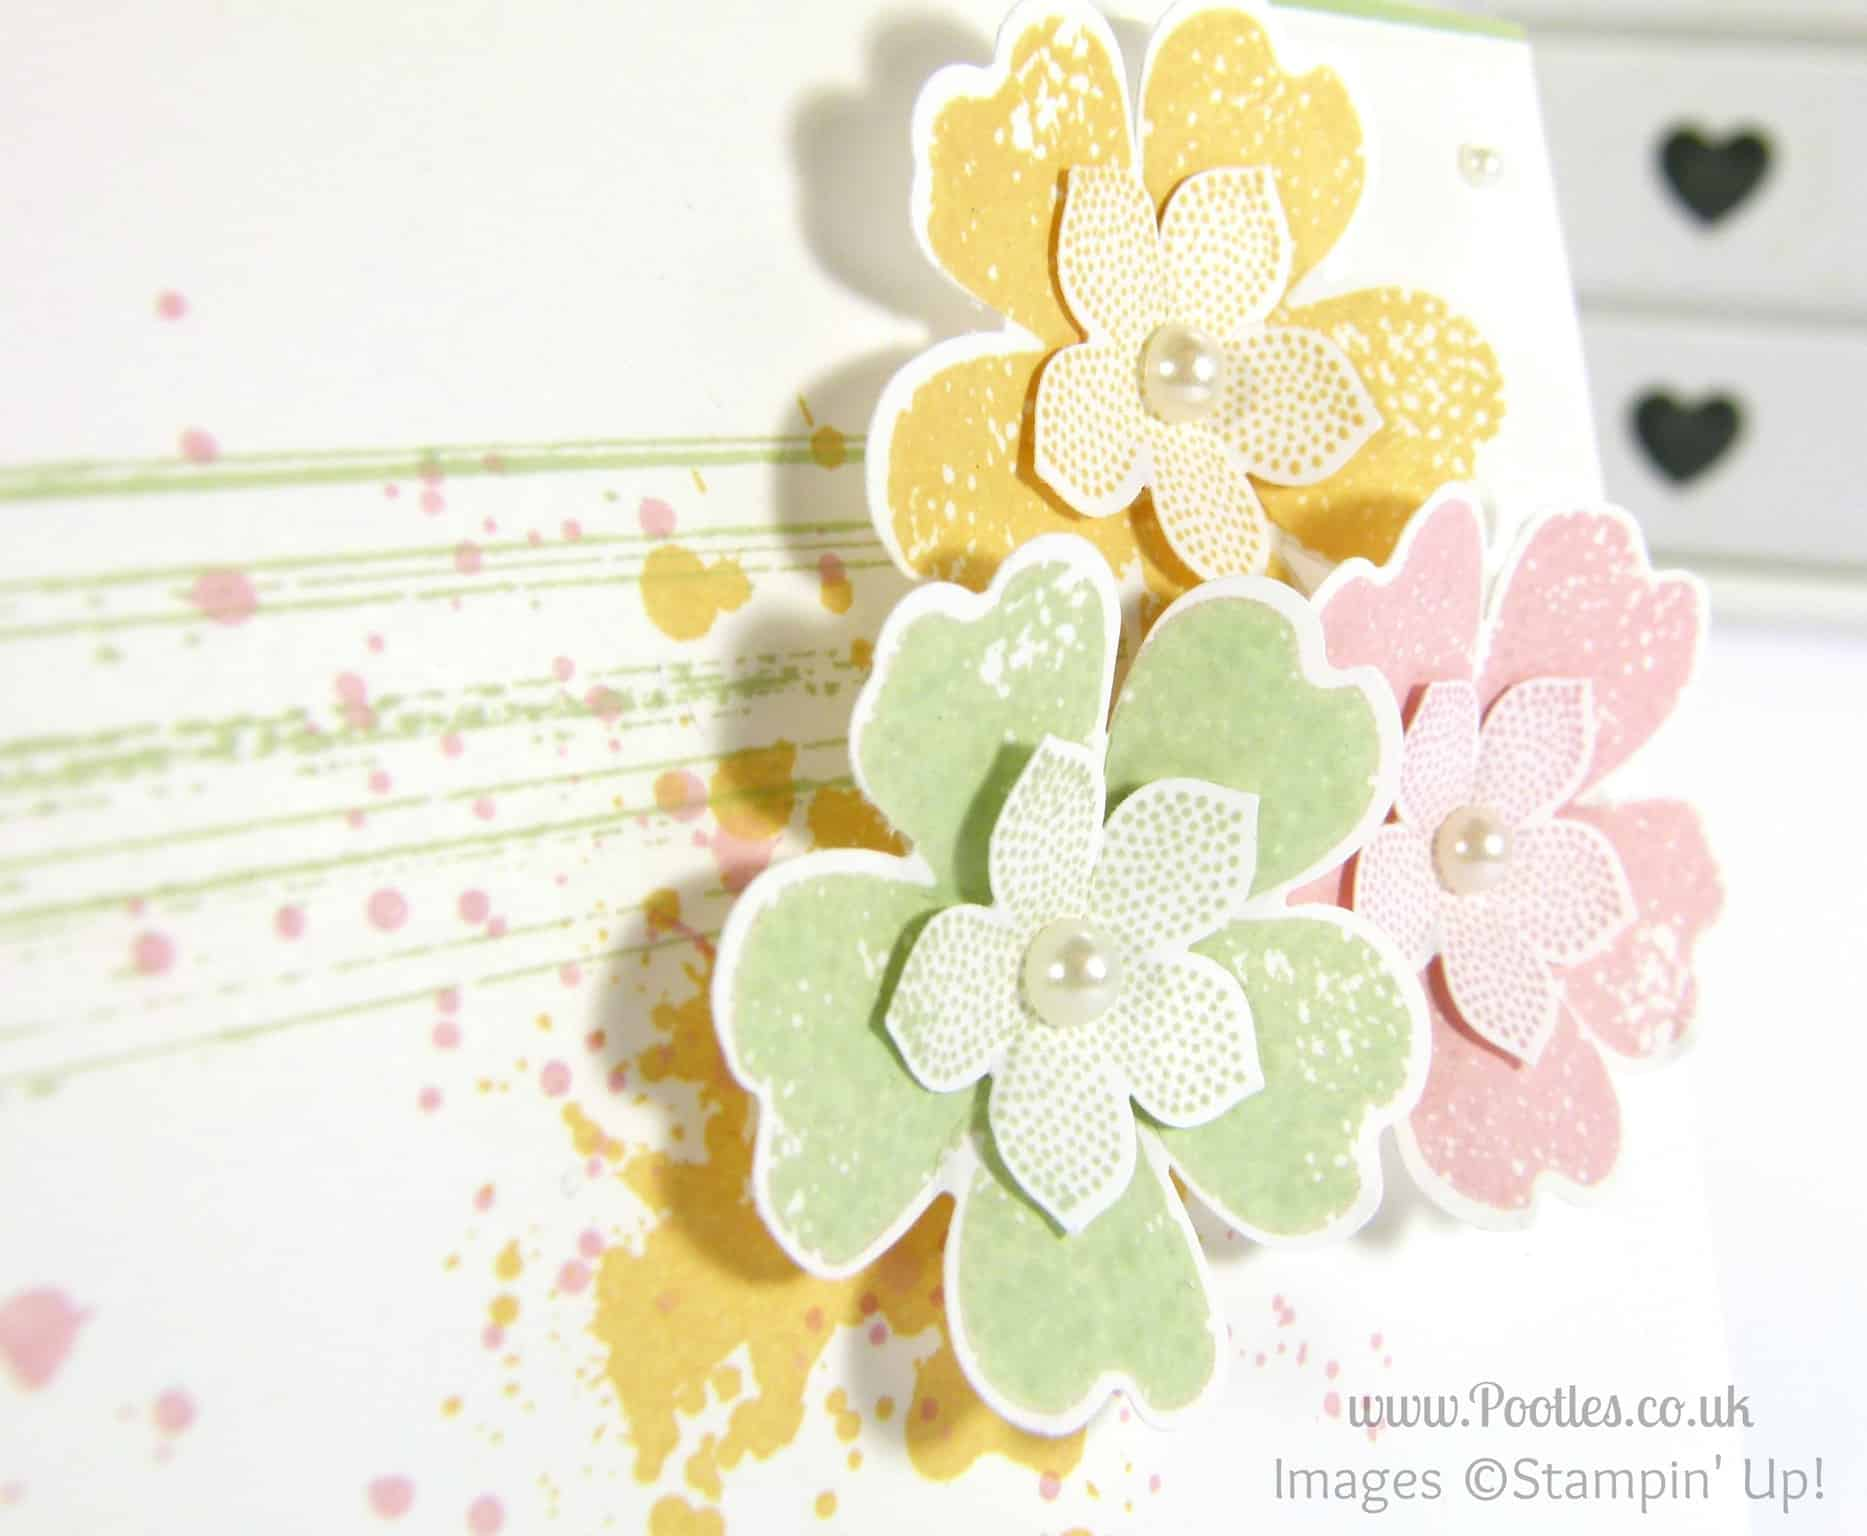 Stampin' Up! UK Independent Demonstrator Pootles - Soft and Subtle Pansies and Petite Petals Punch Detail